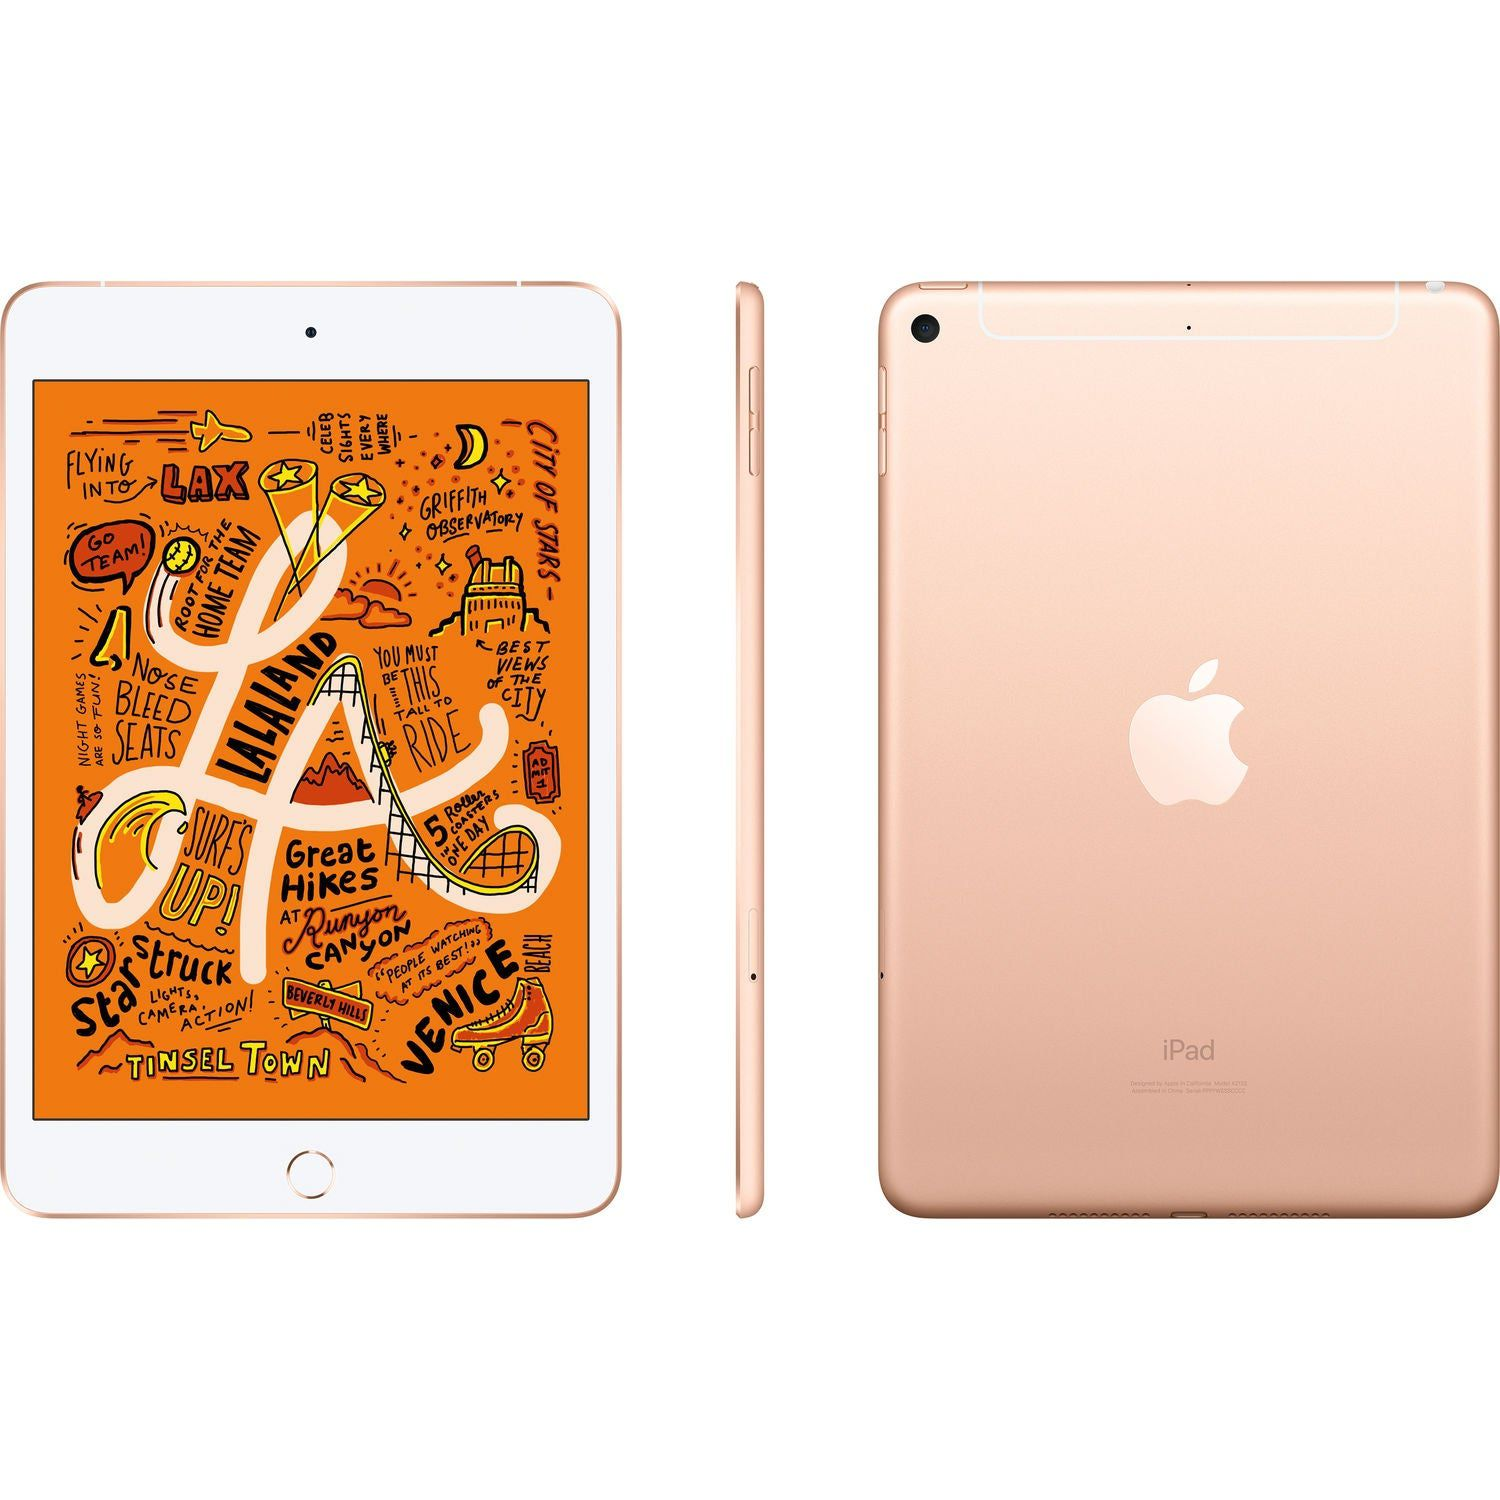 iPad Mini 5 Apple com 64GB, Wi-Fi, Tela 7,9'', Sensor Touch ID, Bluetooth, Câmera iSight 8MP, FaceTime HD e iOS 12 - Dourado